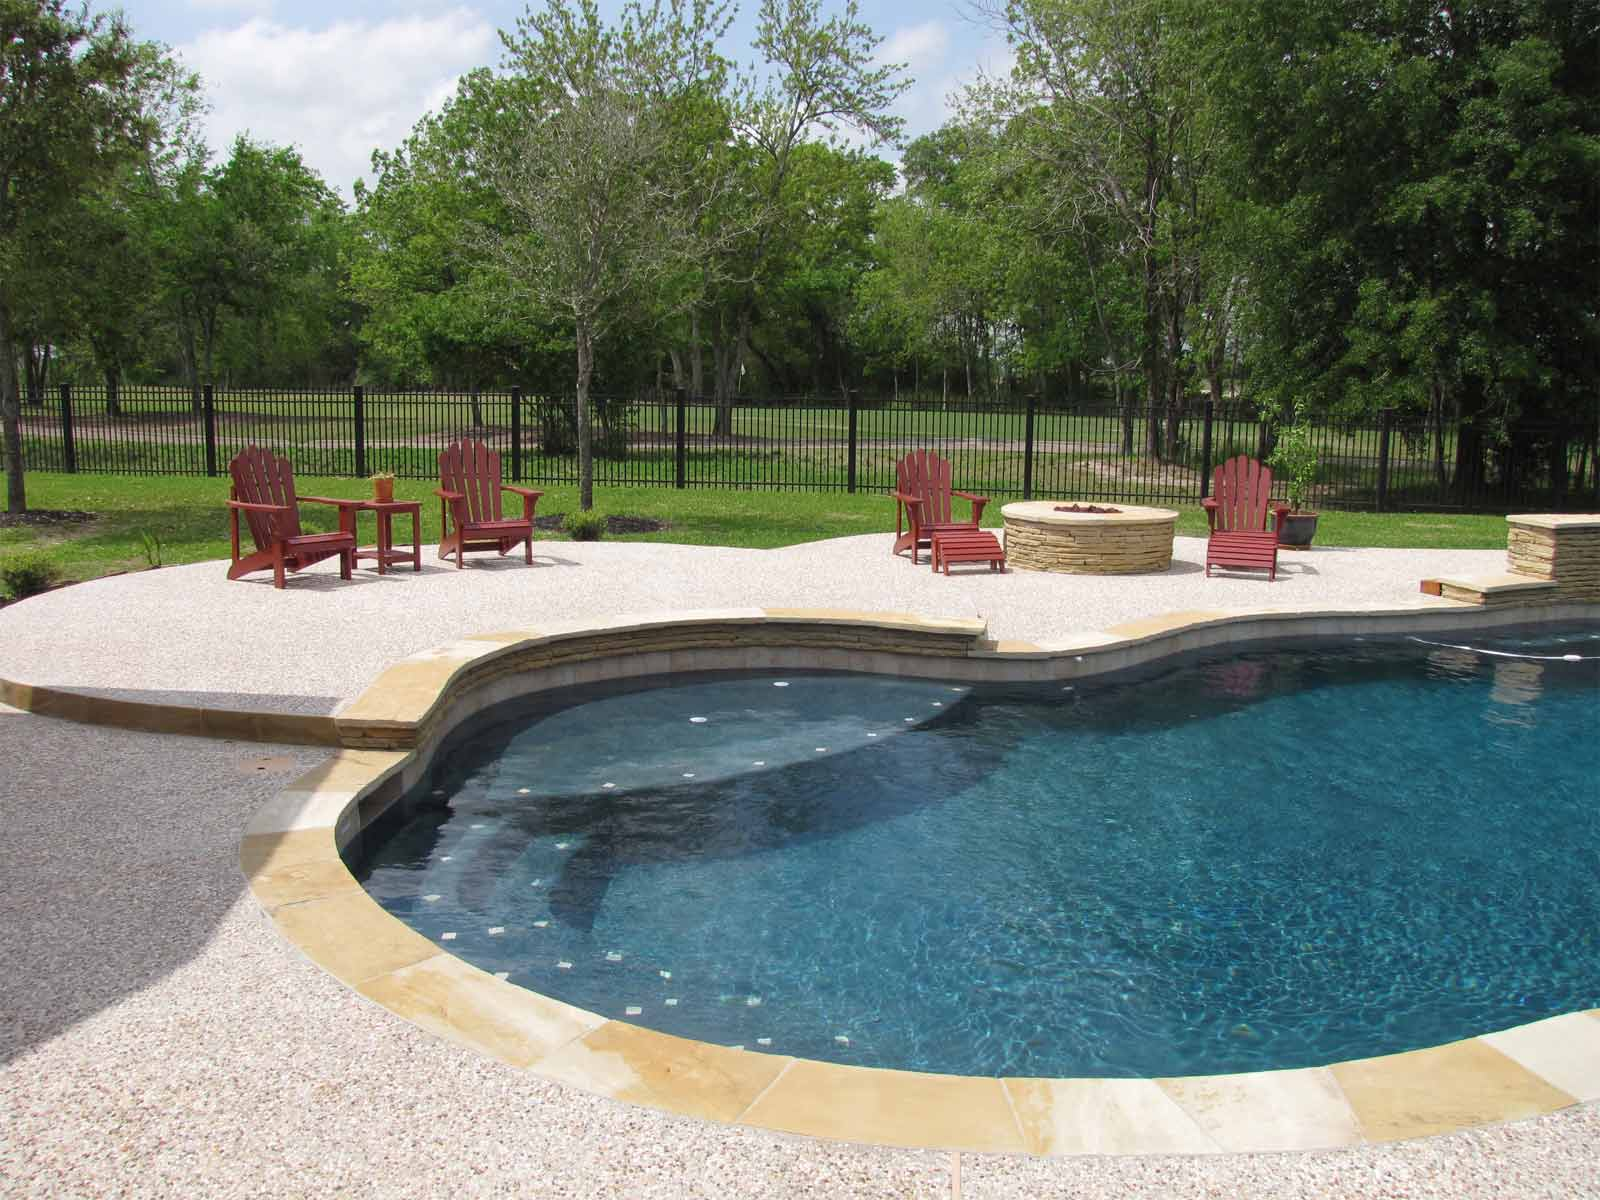 Building your own swimming pool in katy texas aaron for Build your own swimming pool